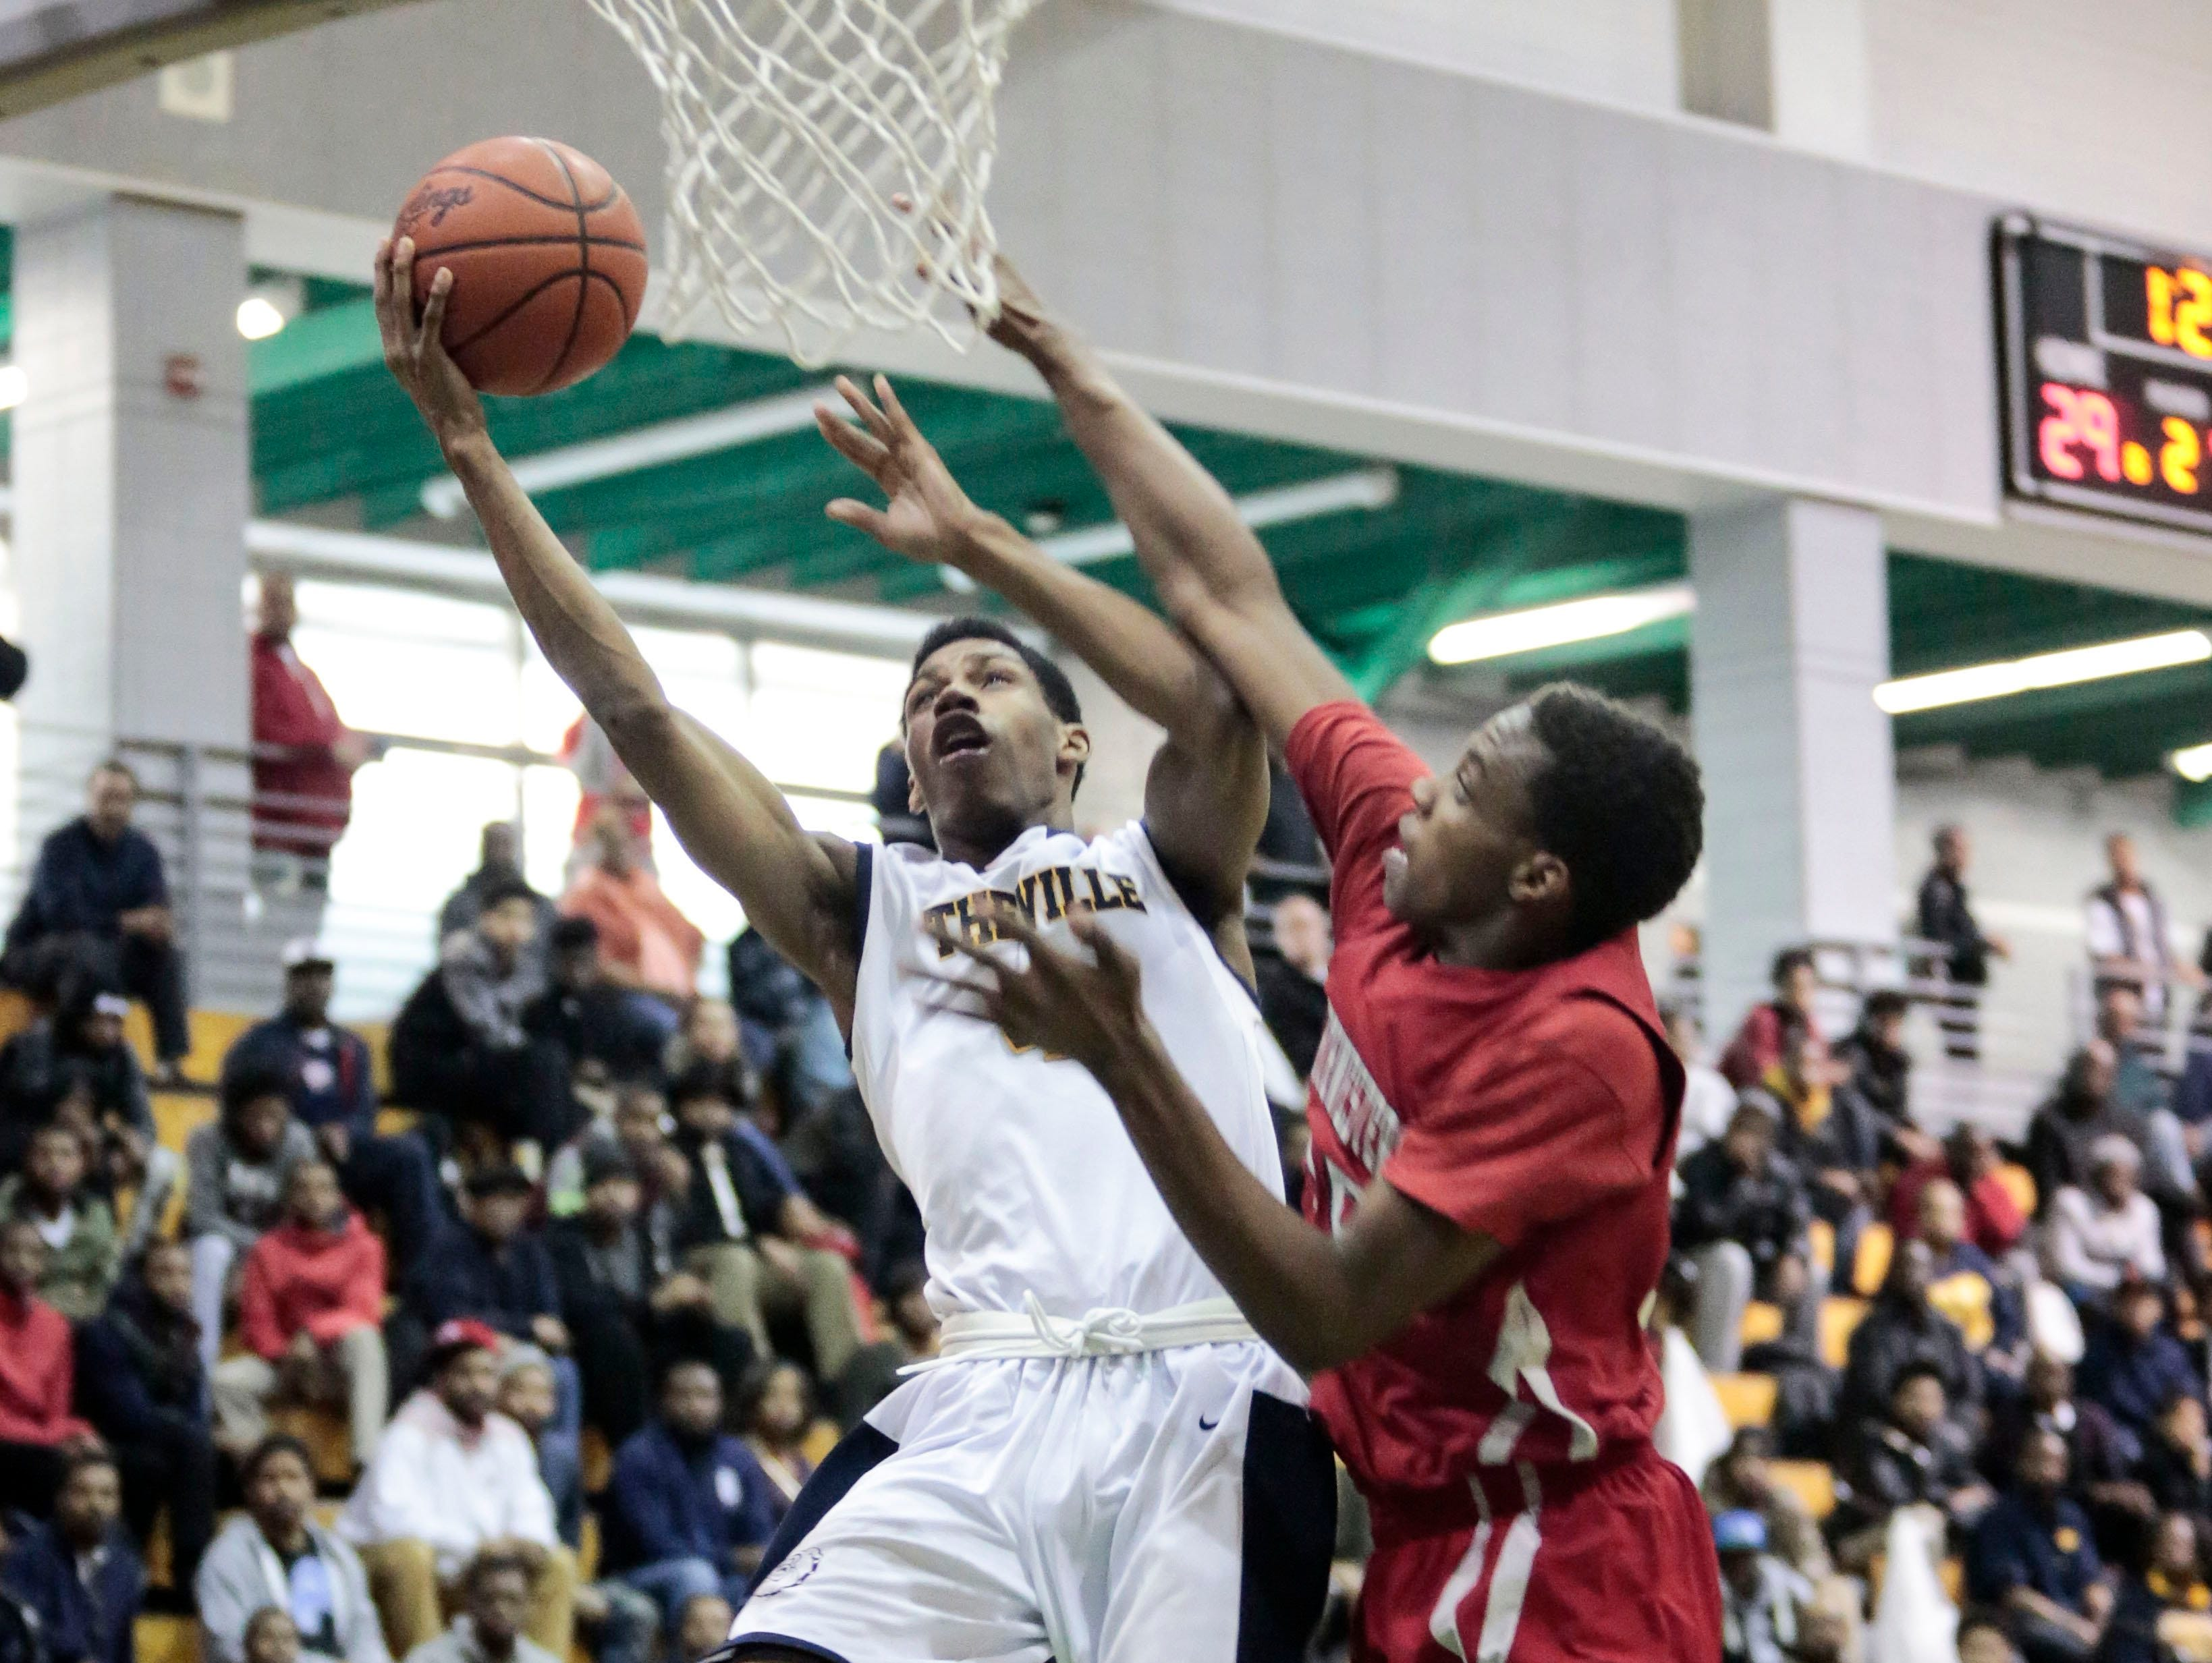 East English Village's Greg Elliott (3) goes up for the shot through the defense during the Northwestern vs. East English Village boys' basketball semifinals on Friday, Feb. 12, 2016 at Cass Technical High School in Detroit. East English Village beat Northwestern 71-70.